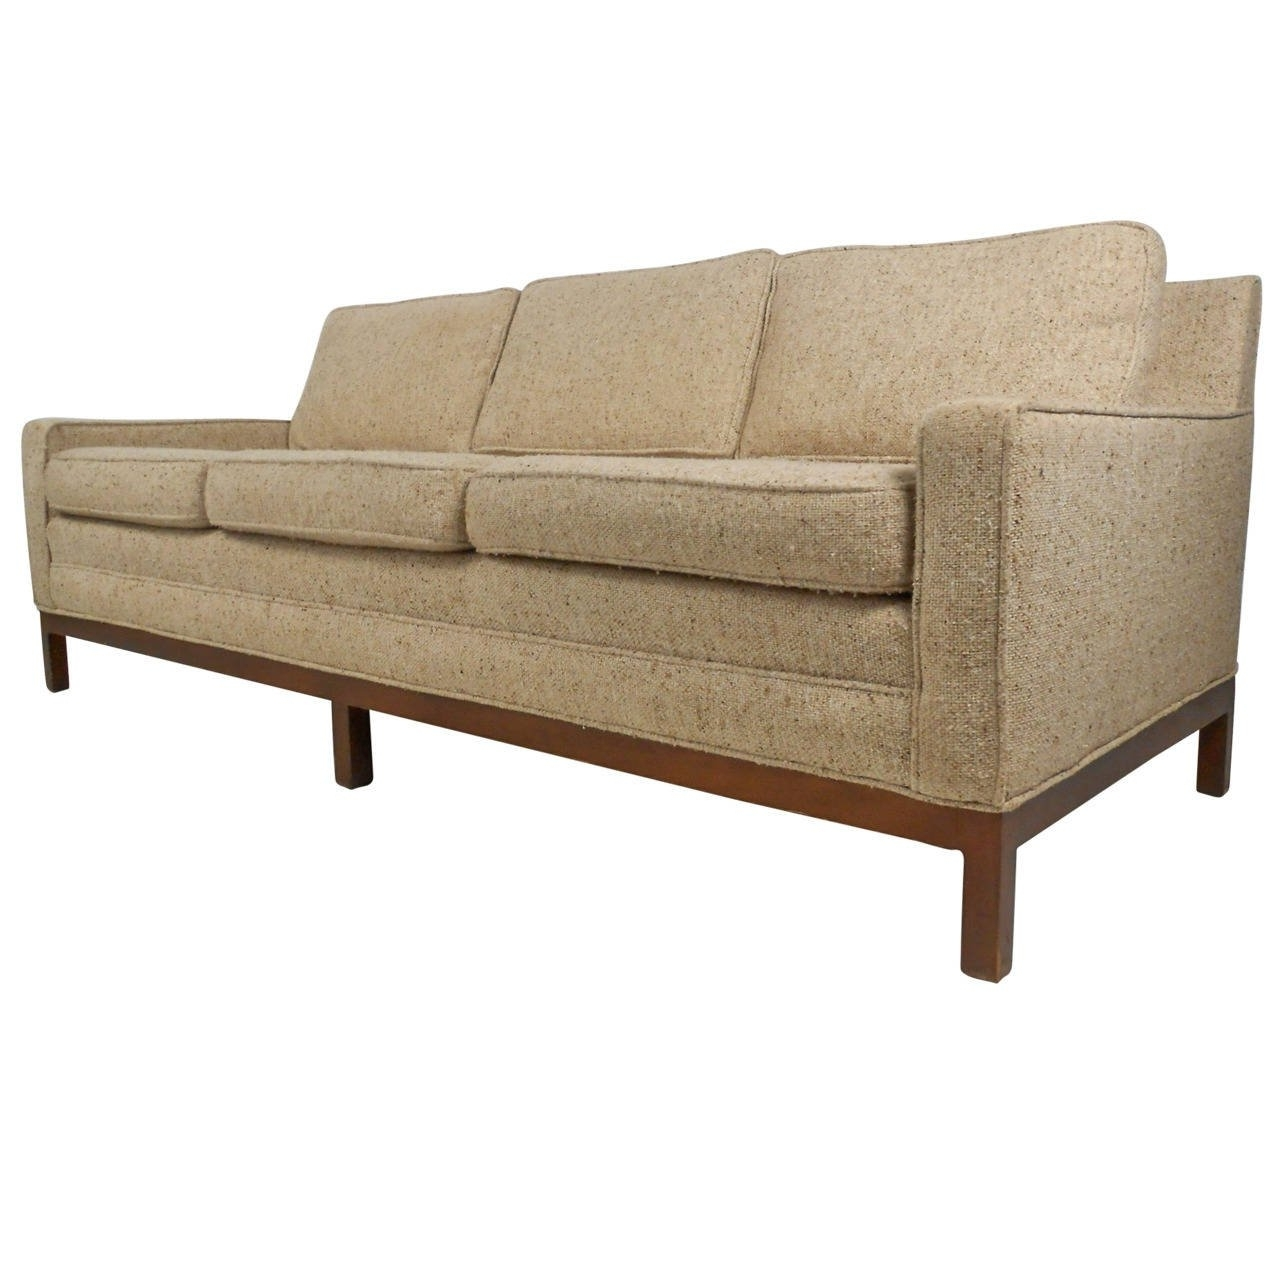 Vintage Modern Sofa After Florence Knoll For Sale At 1Stdibs With Regard To Trendy Florence Large Sofas (View 11 of 15)